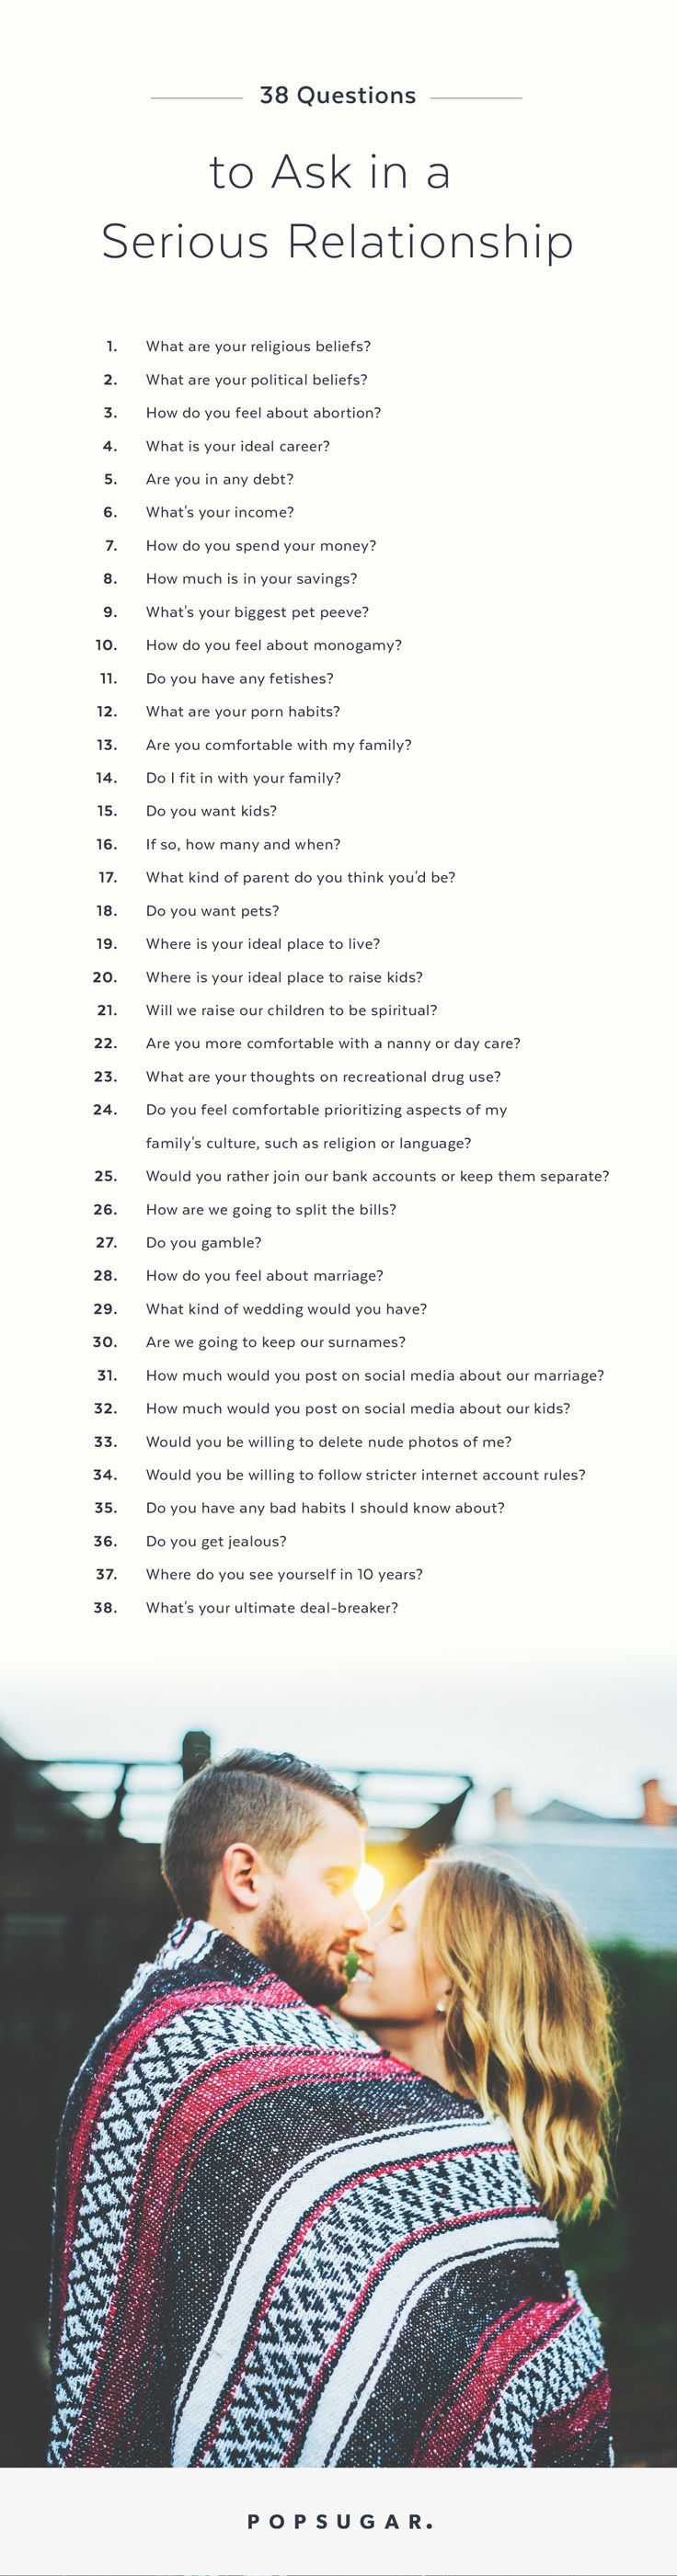 Ahead are 38 questions to ask your significant other as the stakes are raised in your partnership. Note: these range from mildly uncomfortable to a little, sort of, somewhat, totally and utterly cringeworthy.